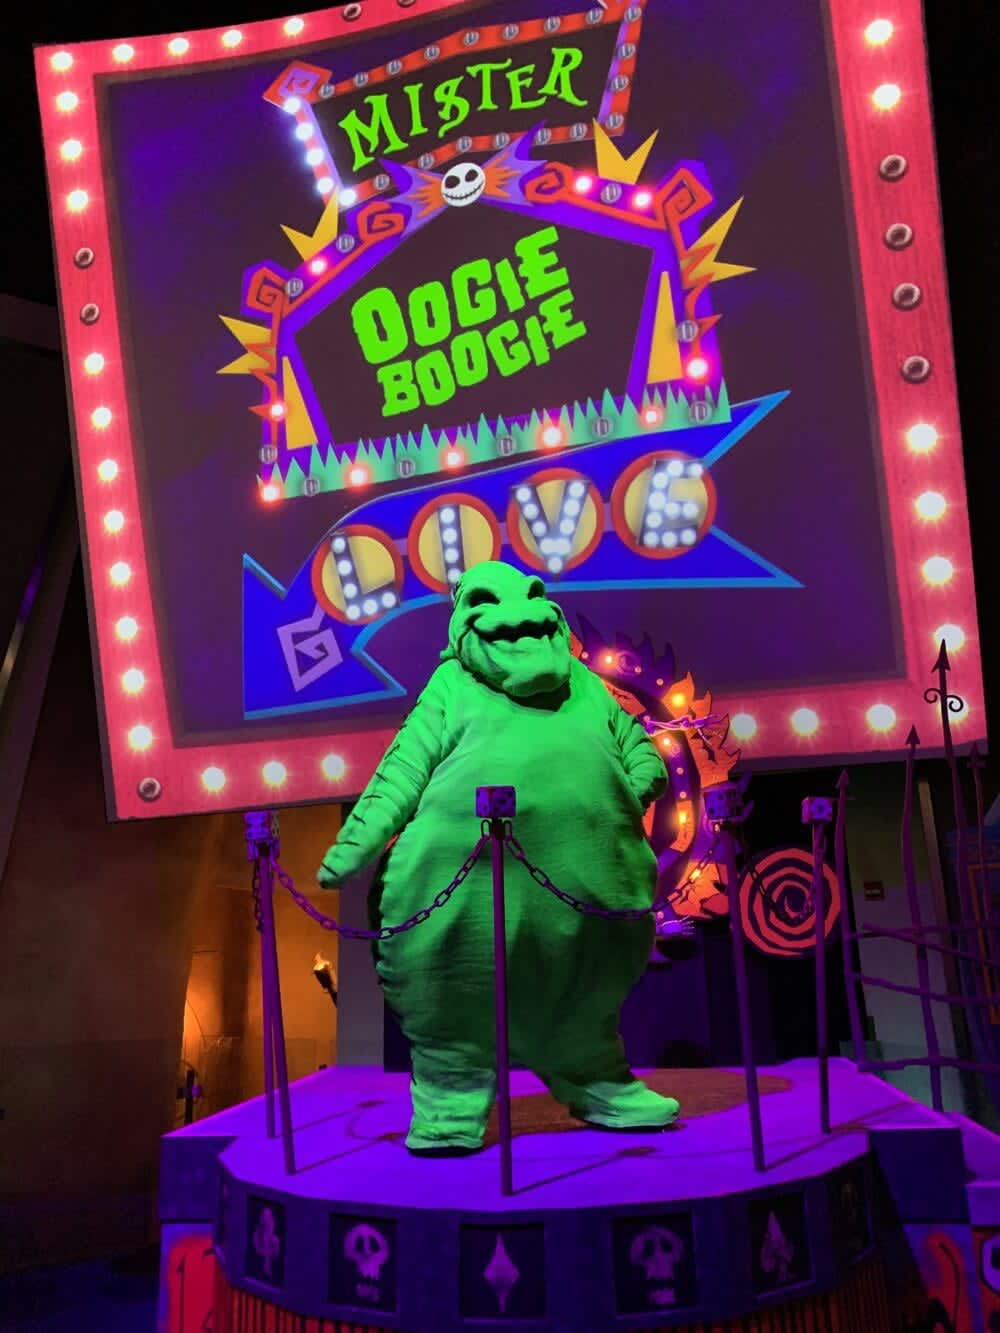 Oogie Boogie Photo location